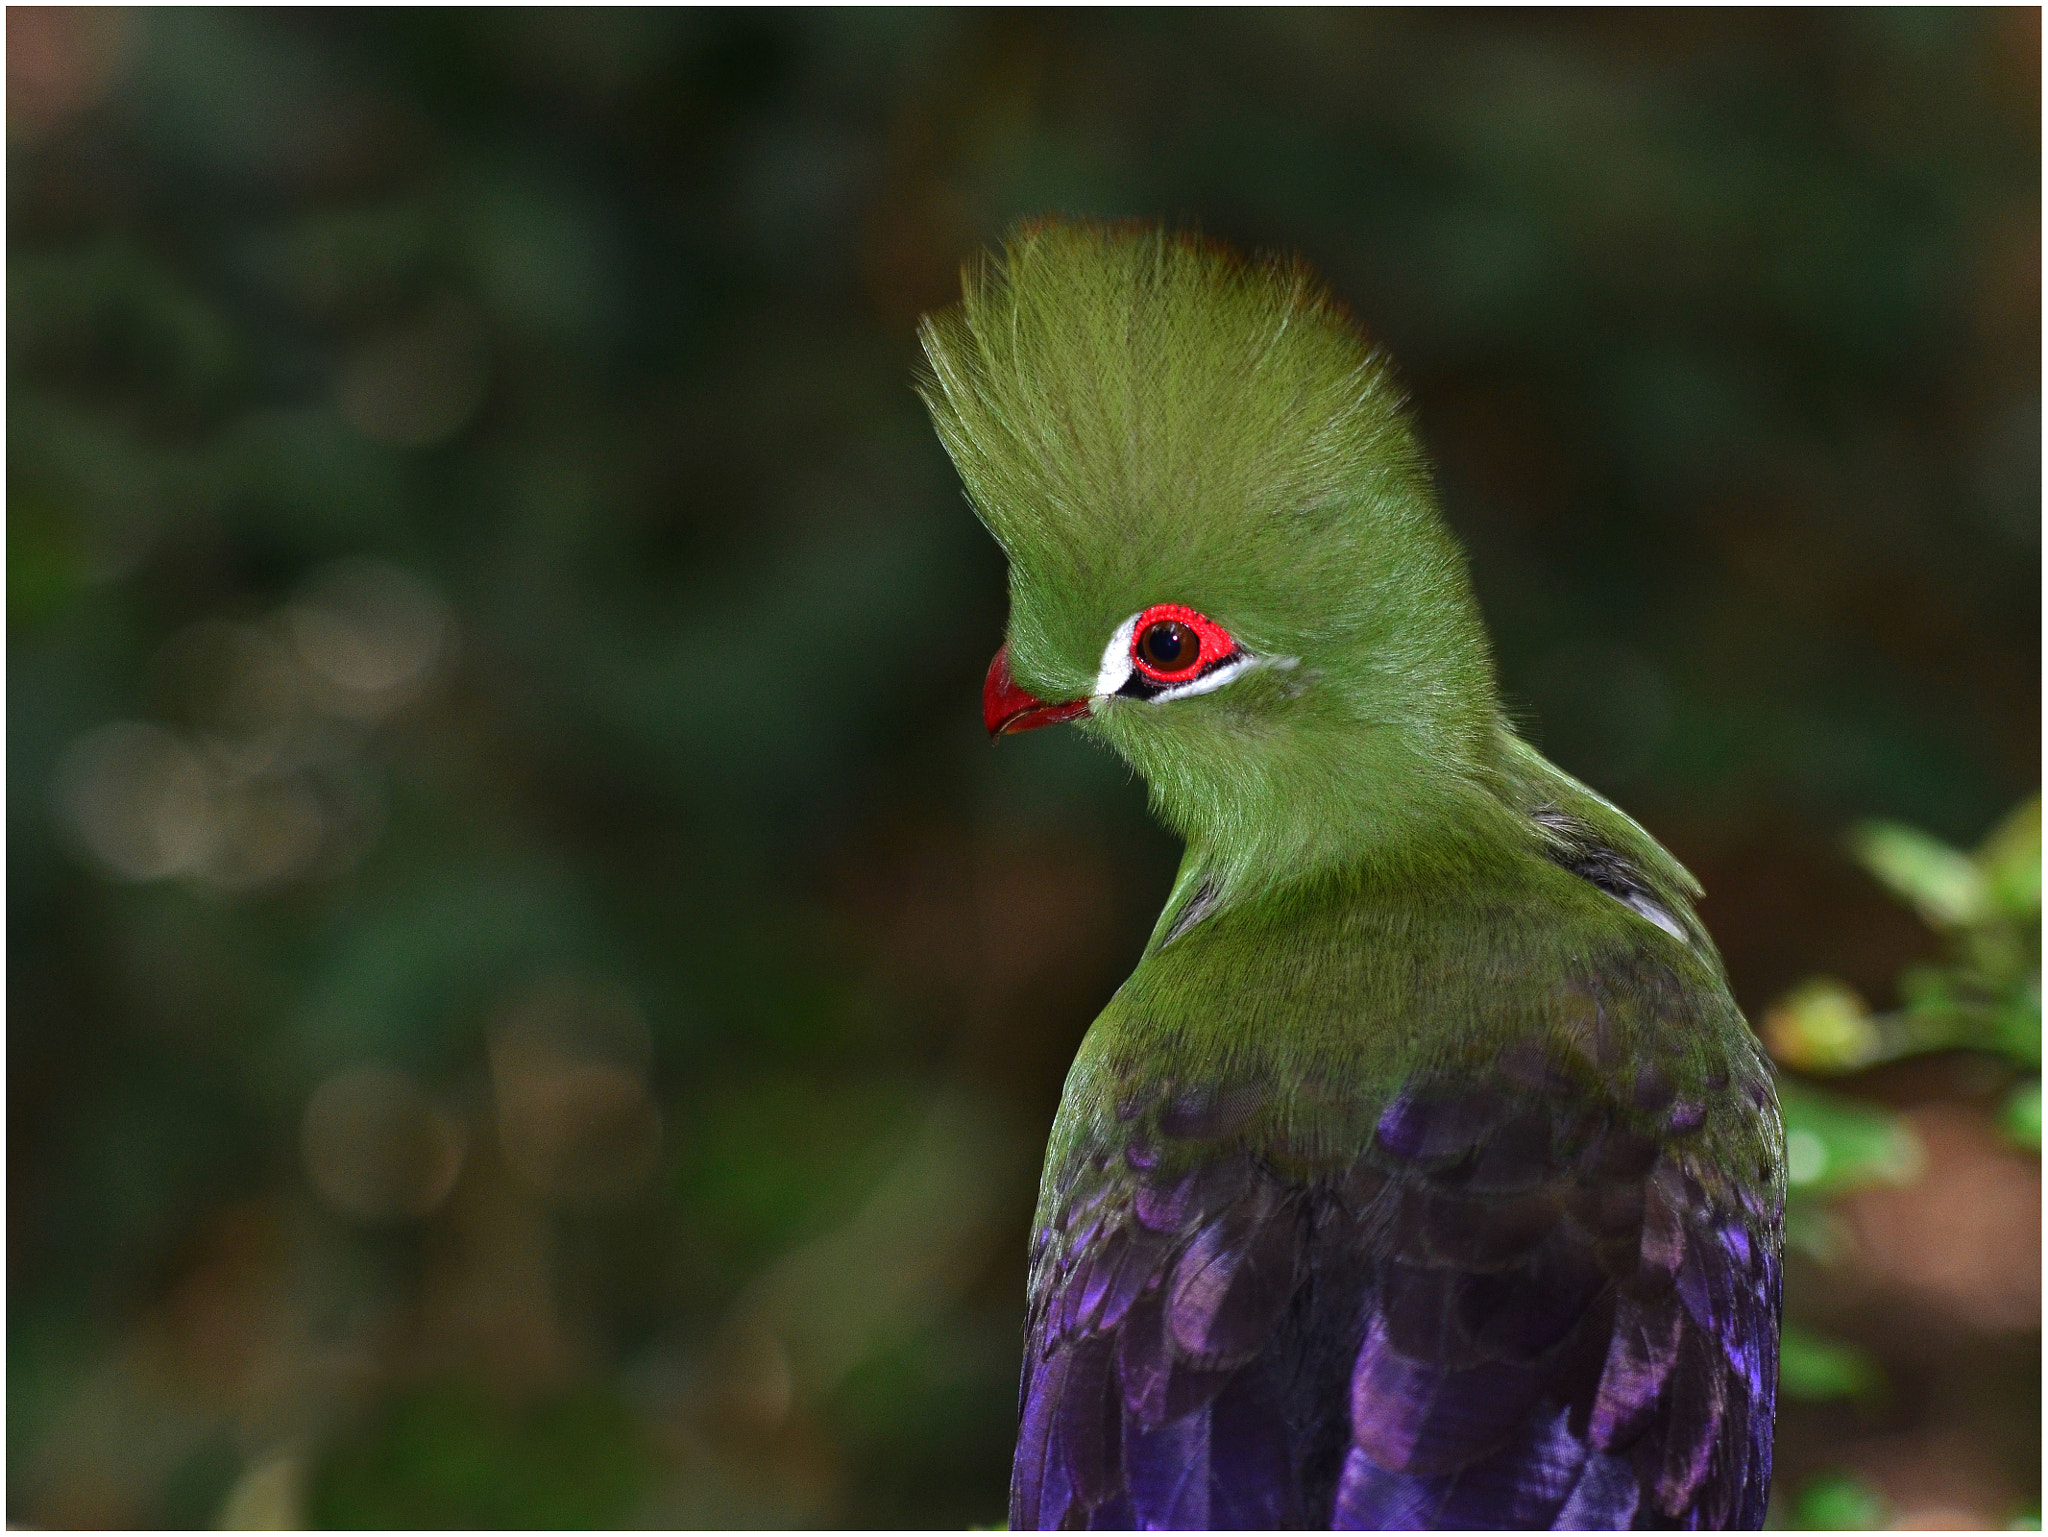 Photograph Green Turaco 2 by Christopher van Zyl on 500px